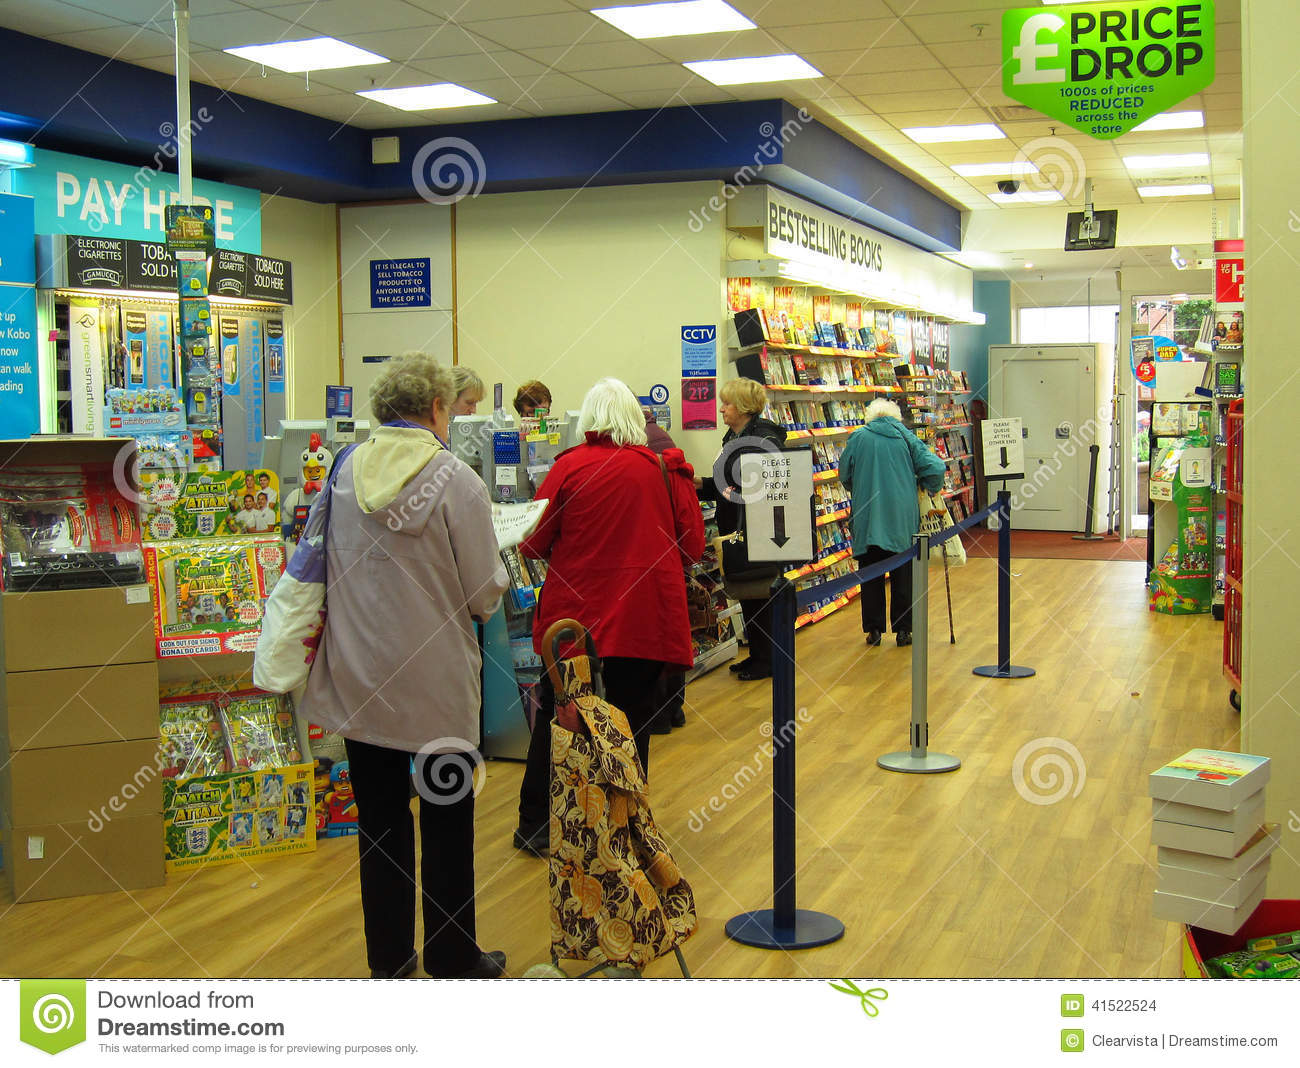 People queuing at a store checkout.